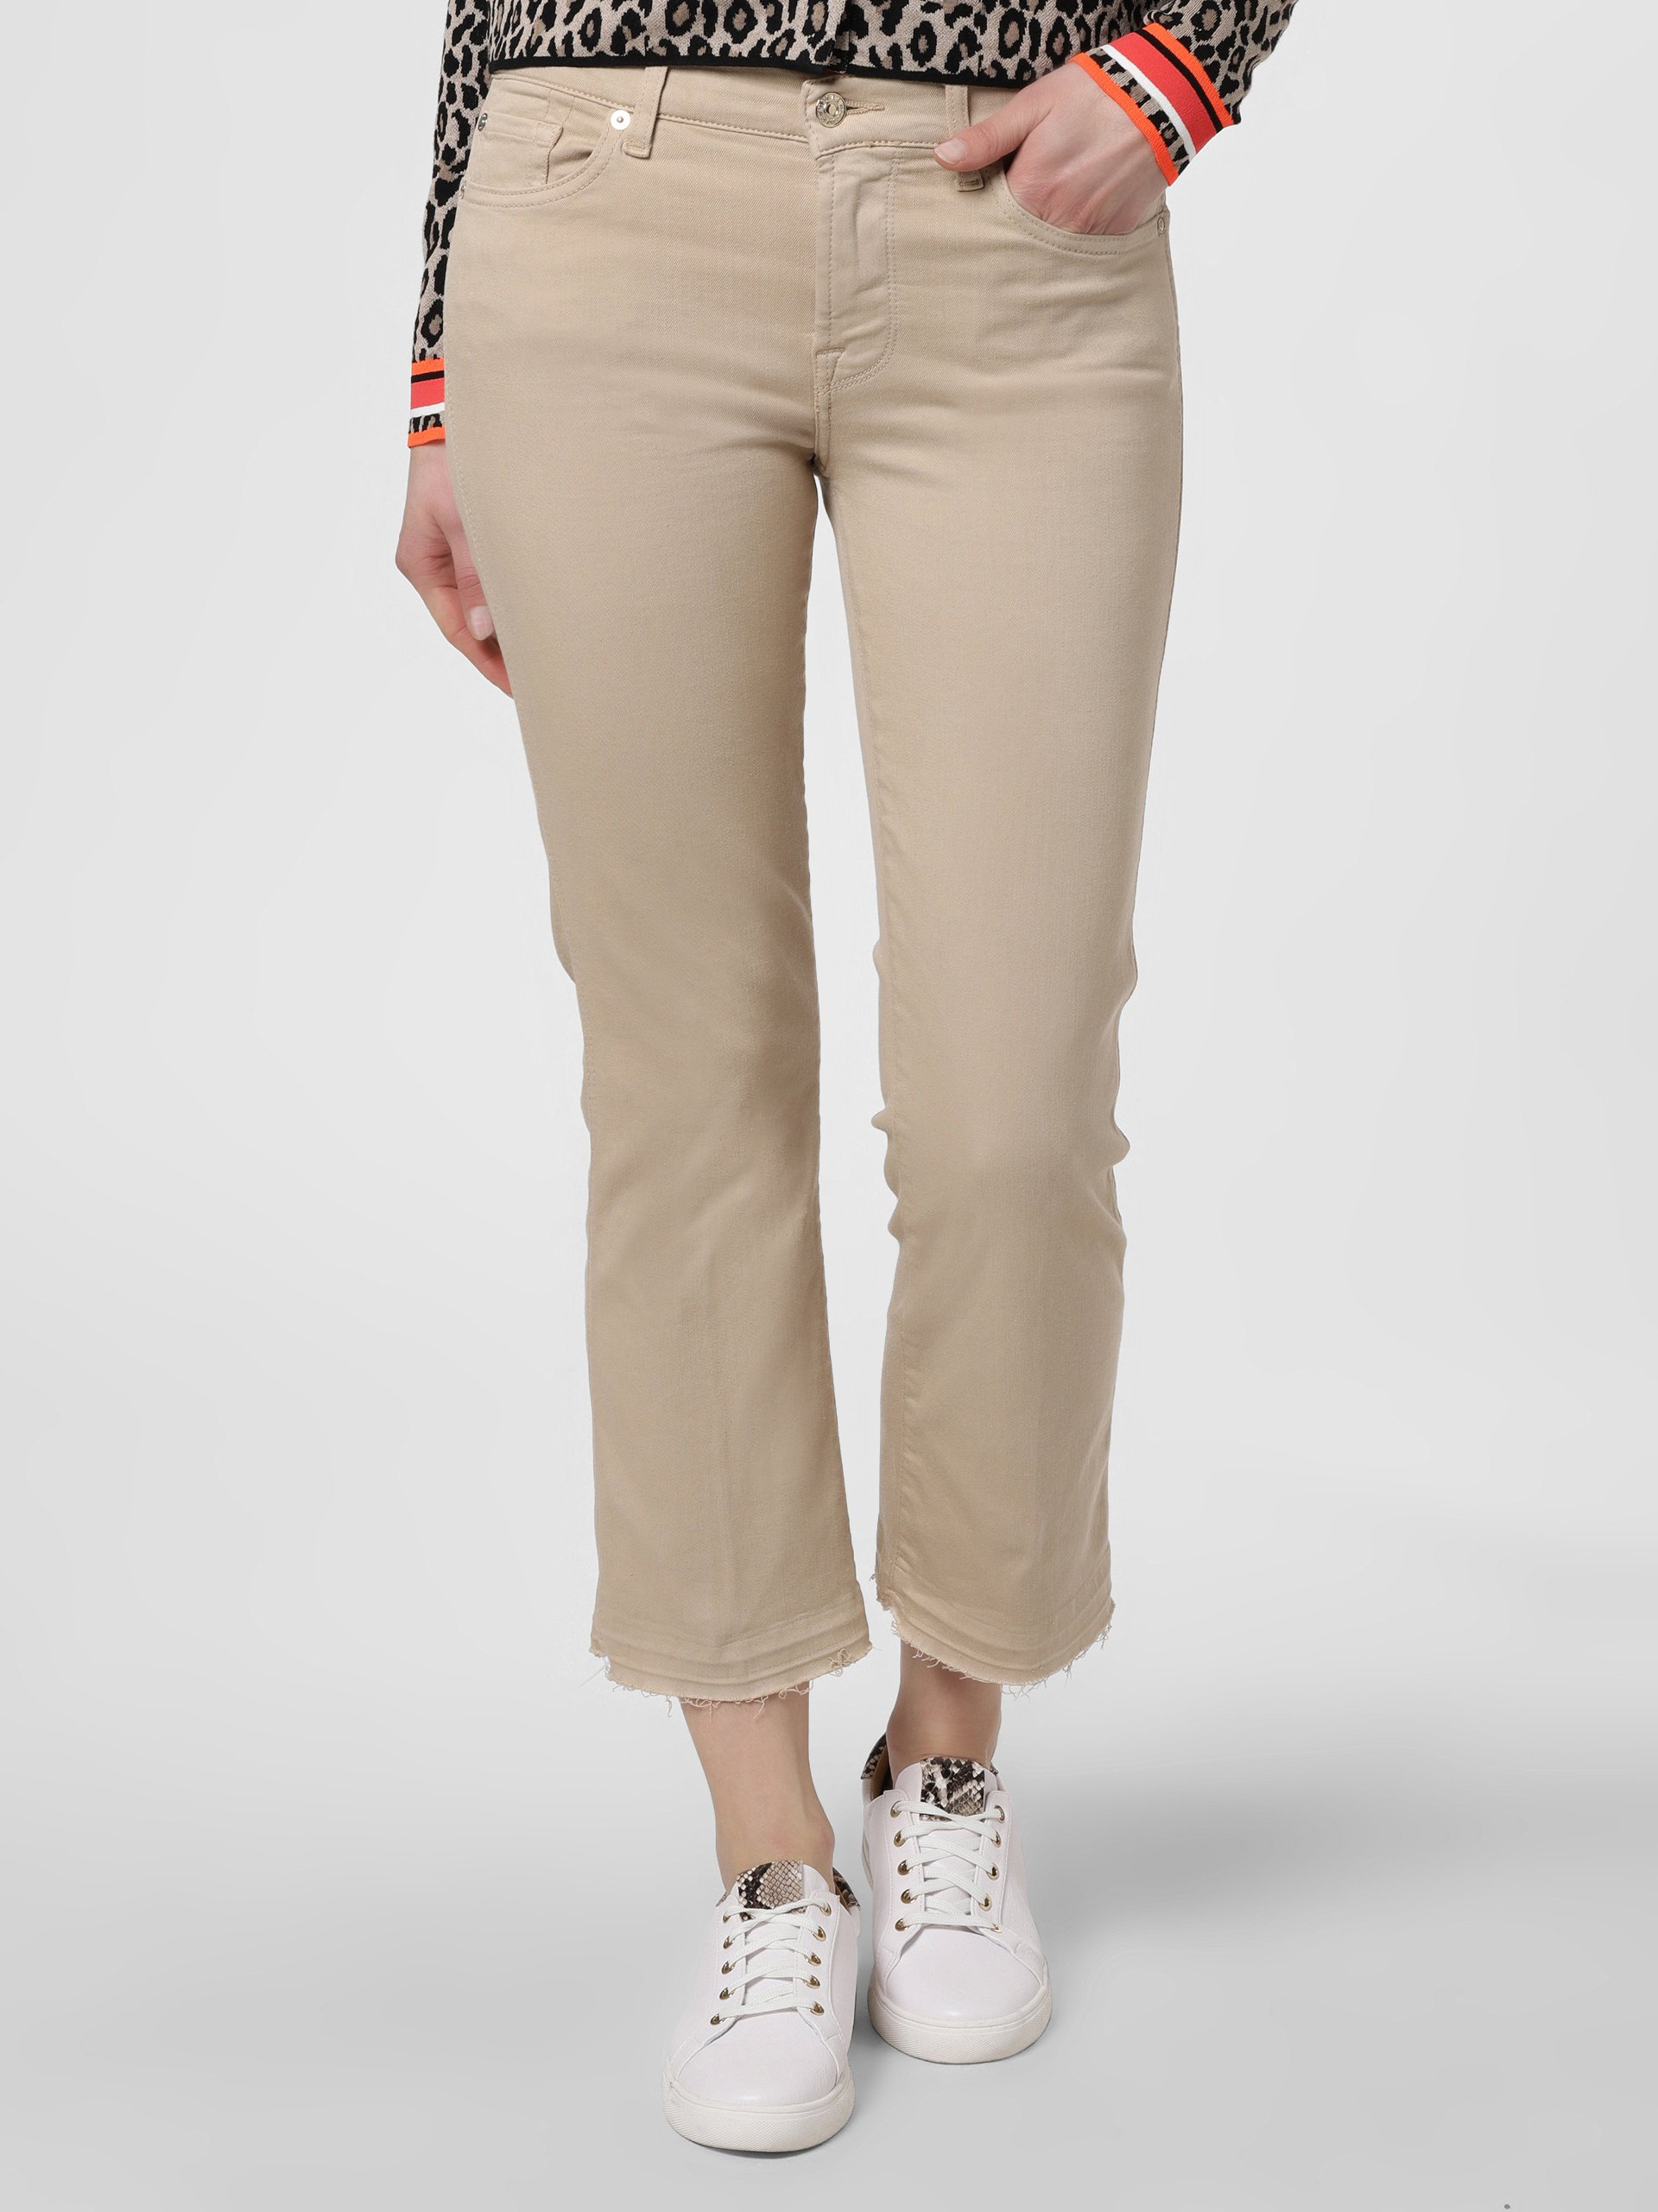 7 For All Mankind Damen Jeans - The Ankle Flare